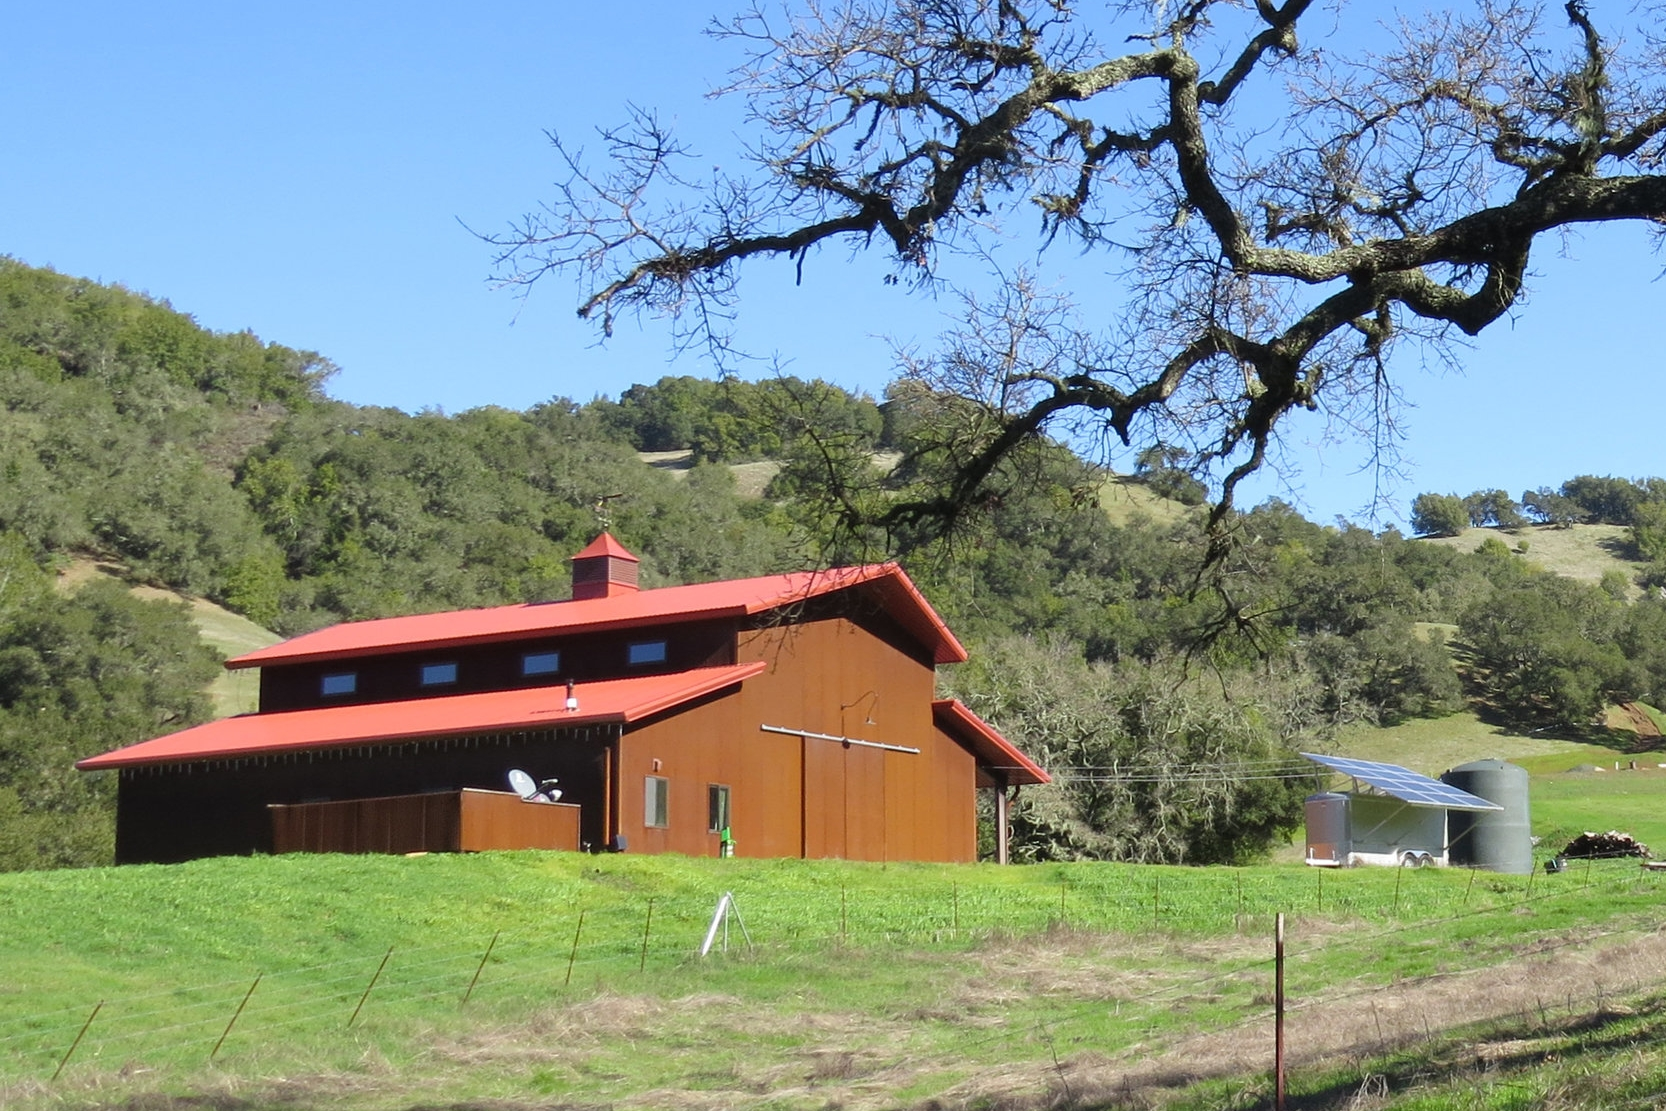 New Barn in Cayucos, CA. Agrarian Architecture style.